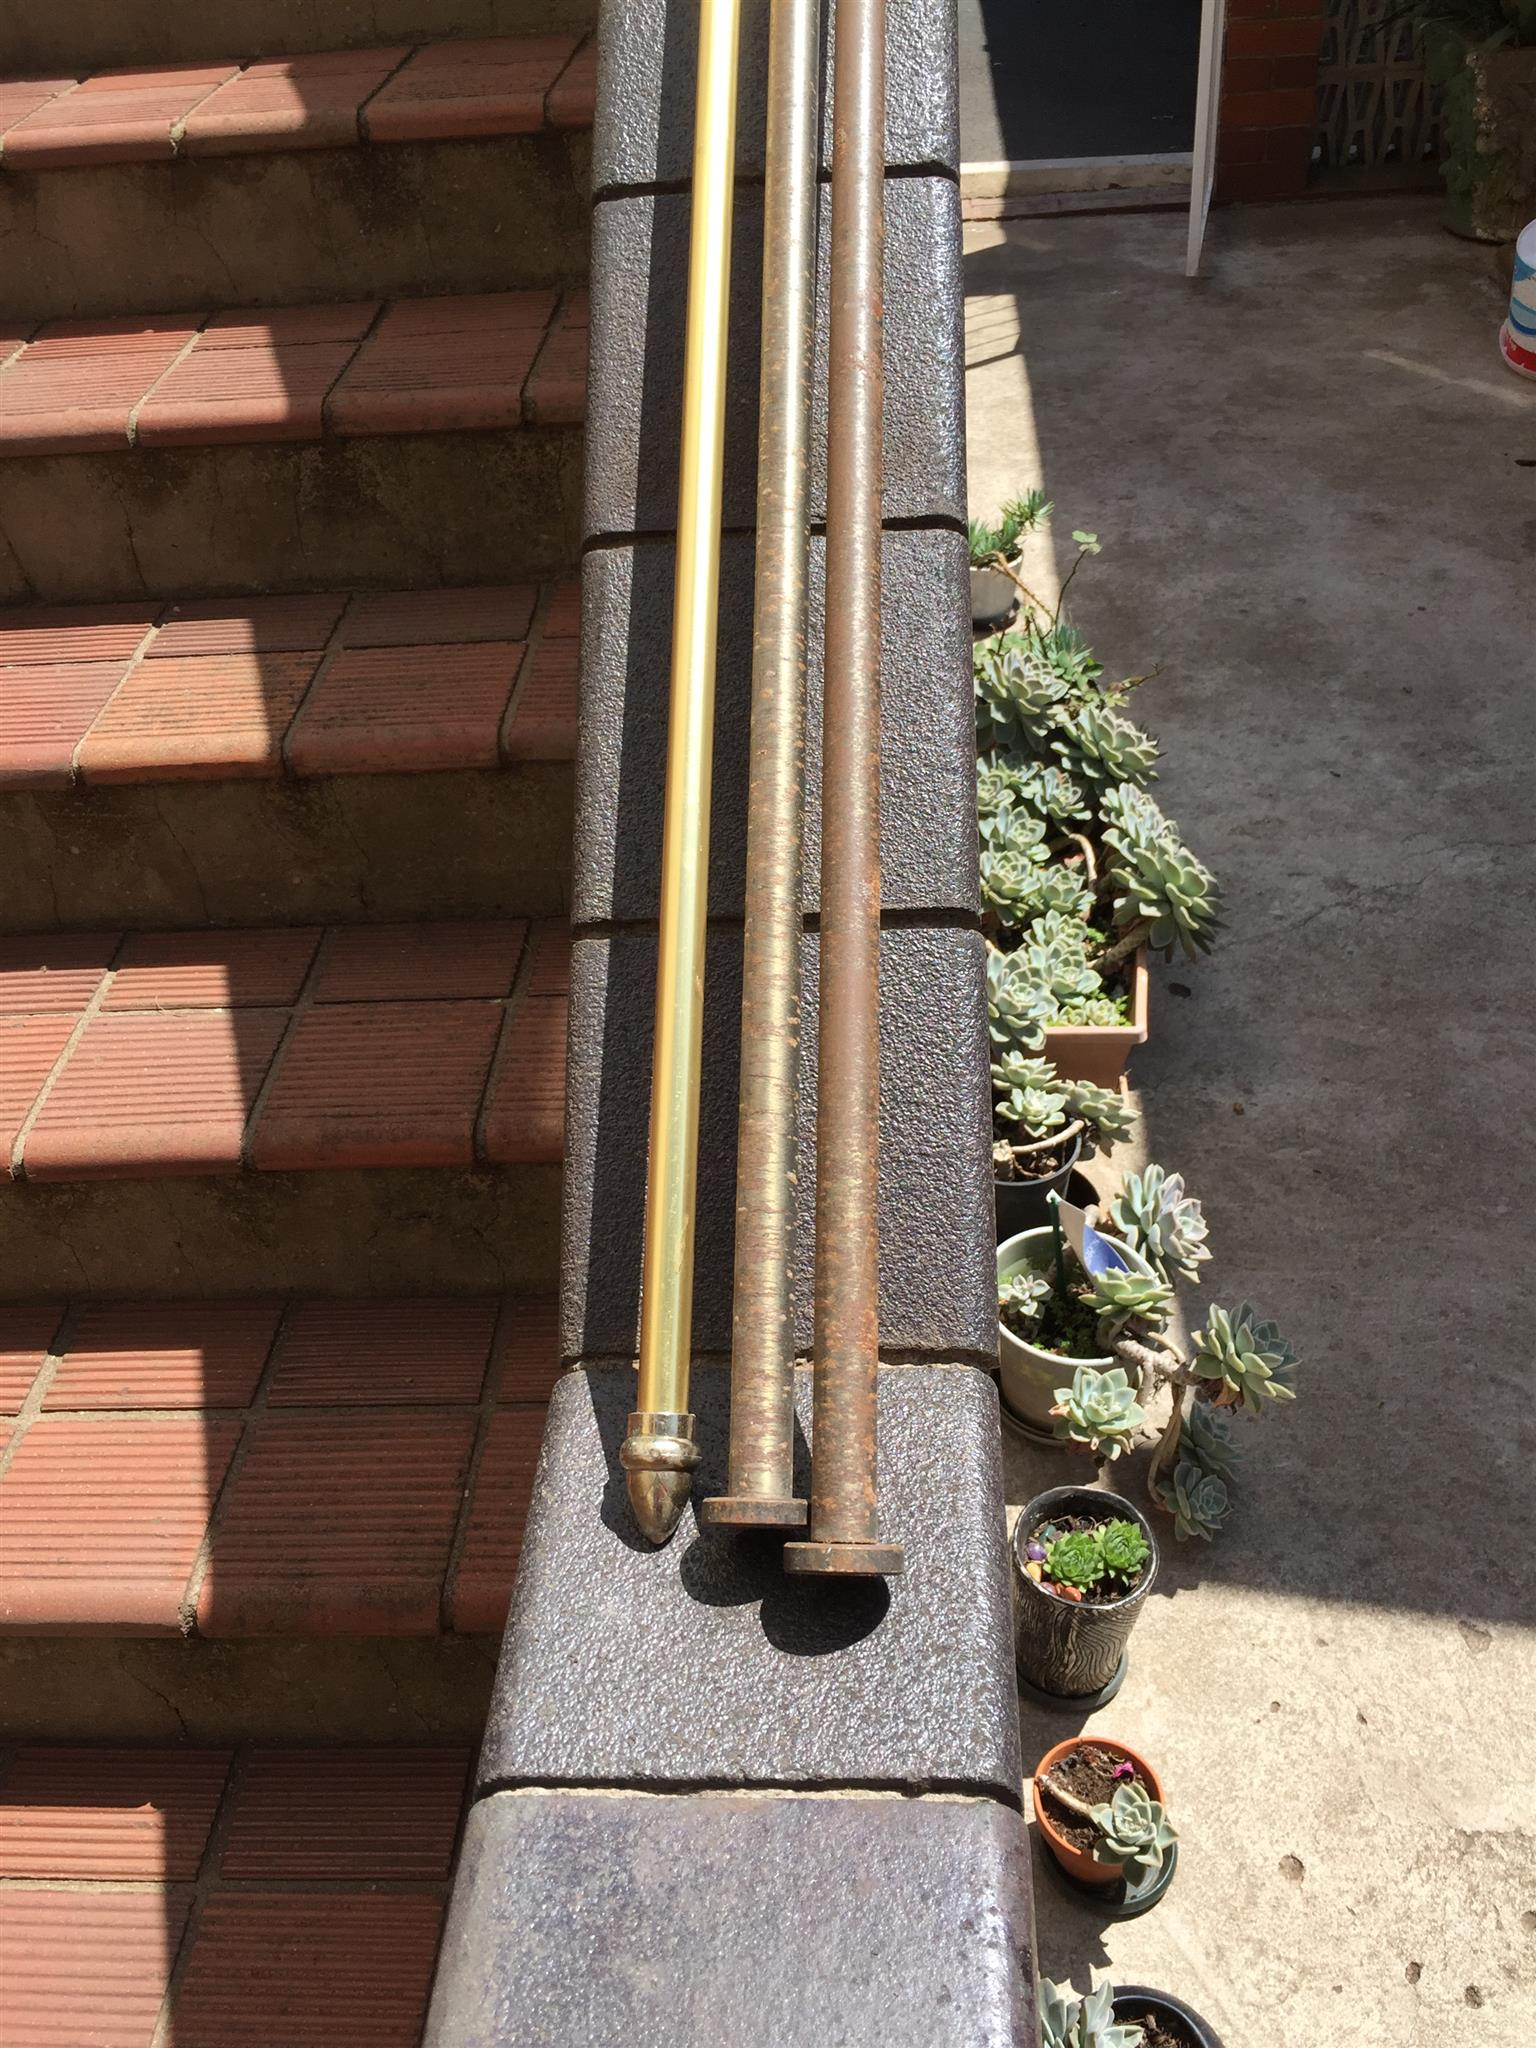 3 Metal Curtain Rails . 2x 1.5m by 3.5cm . Bronze with Finials. 1x3m by 3.5cm Gold with Finials . No brackets. R250 for all 3.